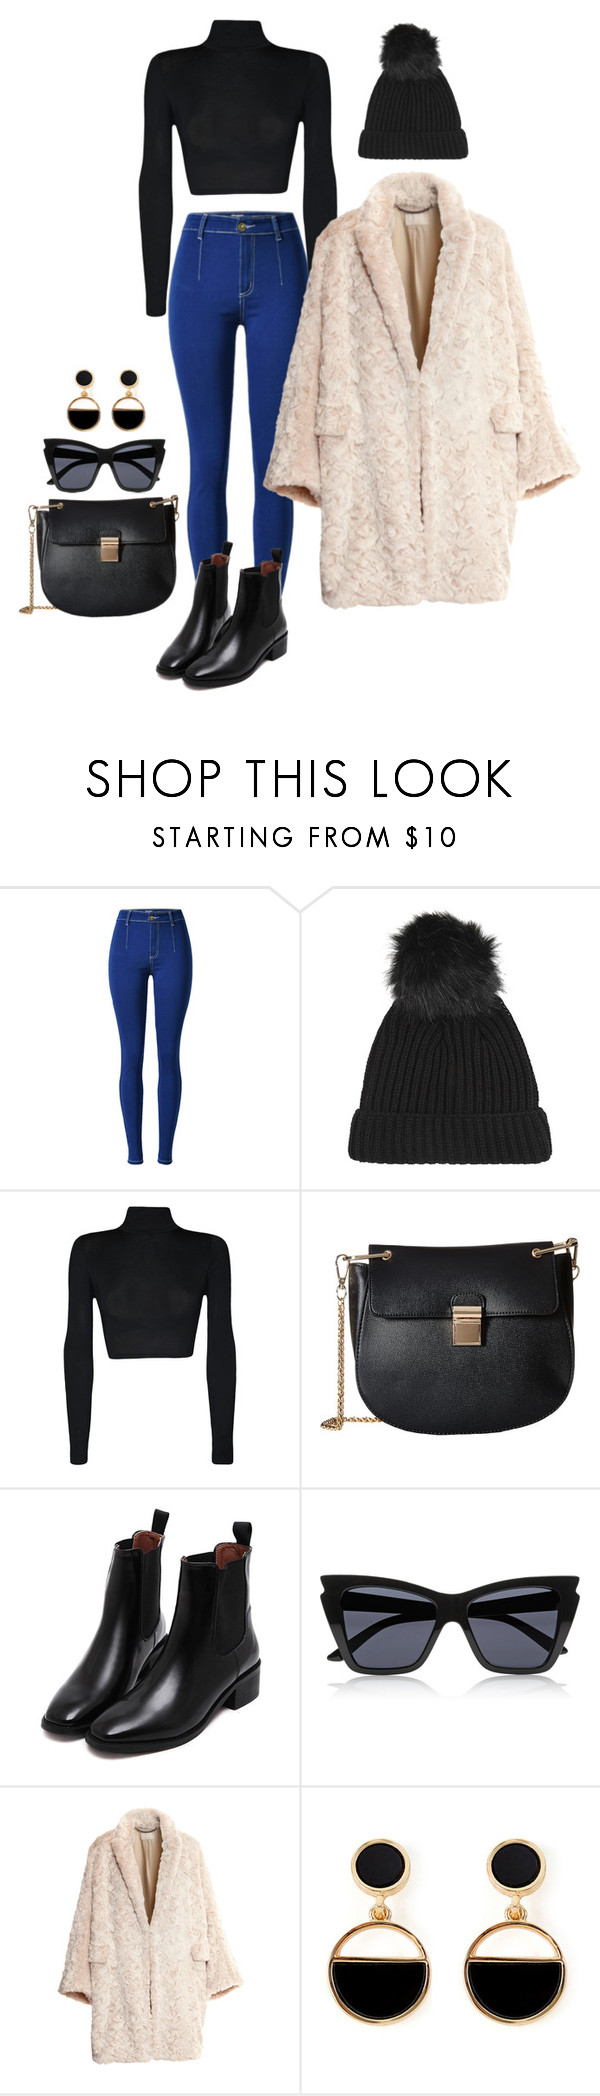 """008"" by shfeisty on Polyvore featuring Topshop, WearAll, Gabriella Rocha, Le Specs, H&M and Warehouse"